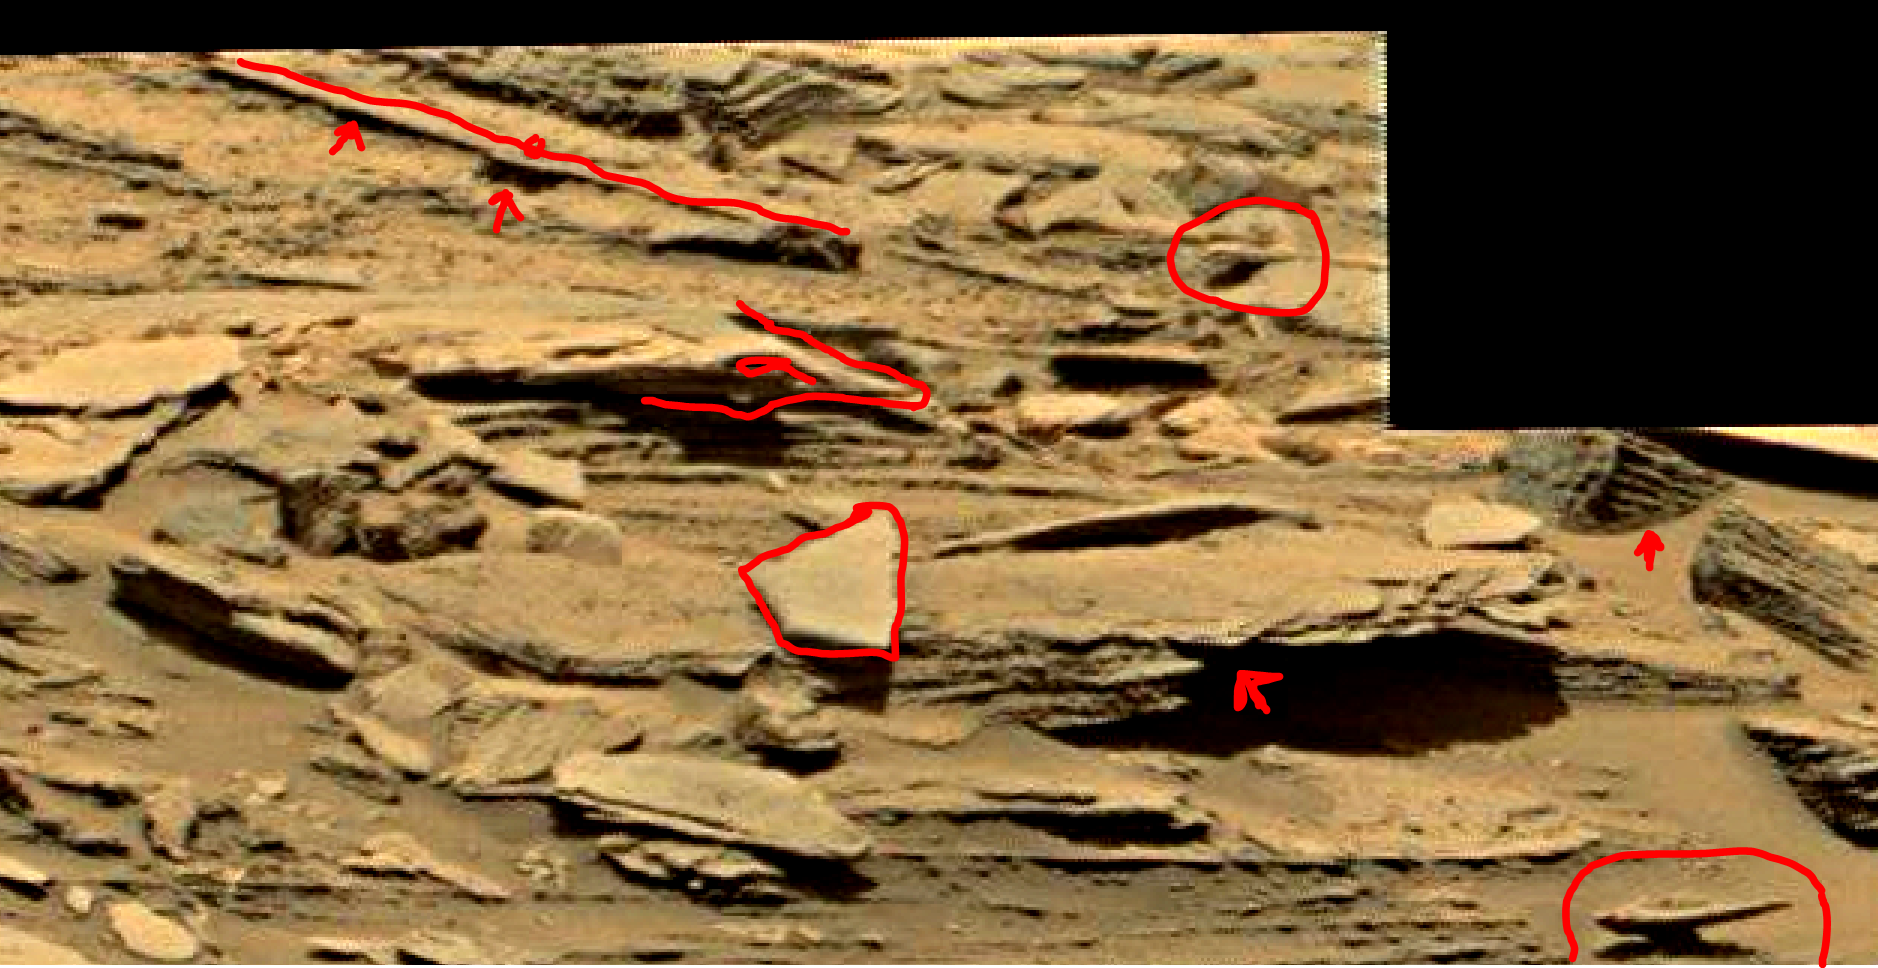 mars sol 1353 anomaly-artifacts 32a was life on mars